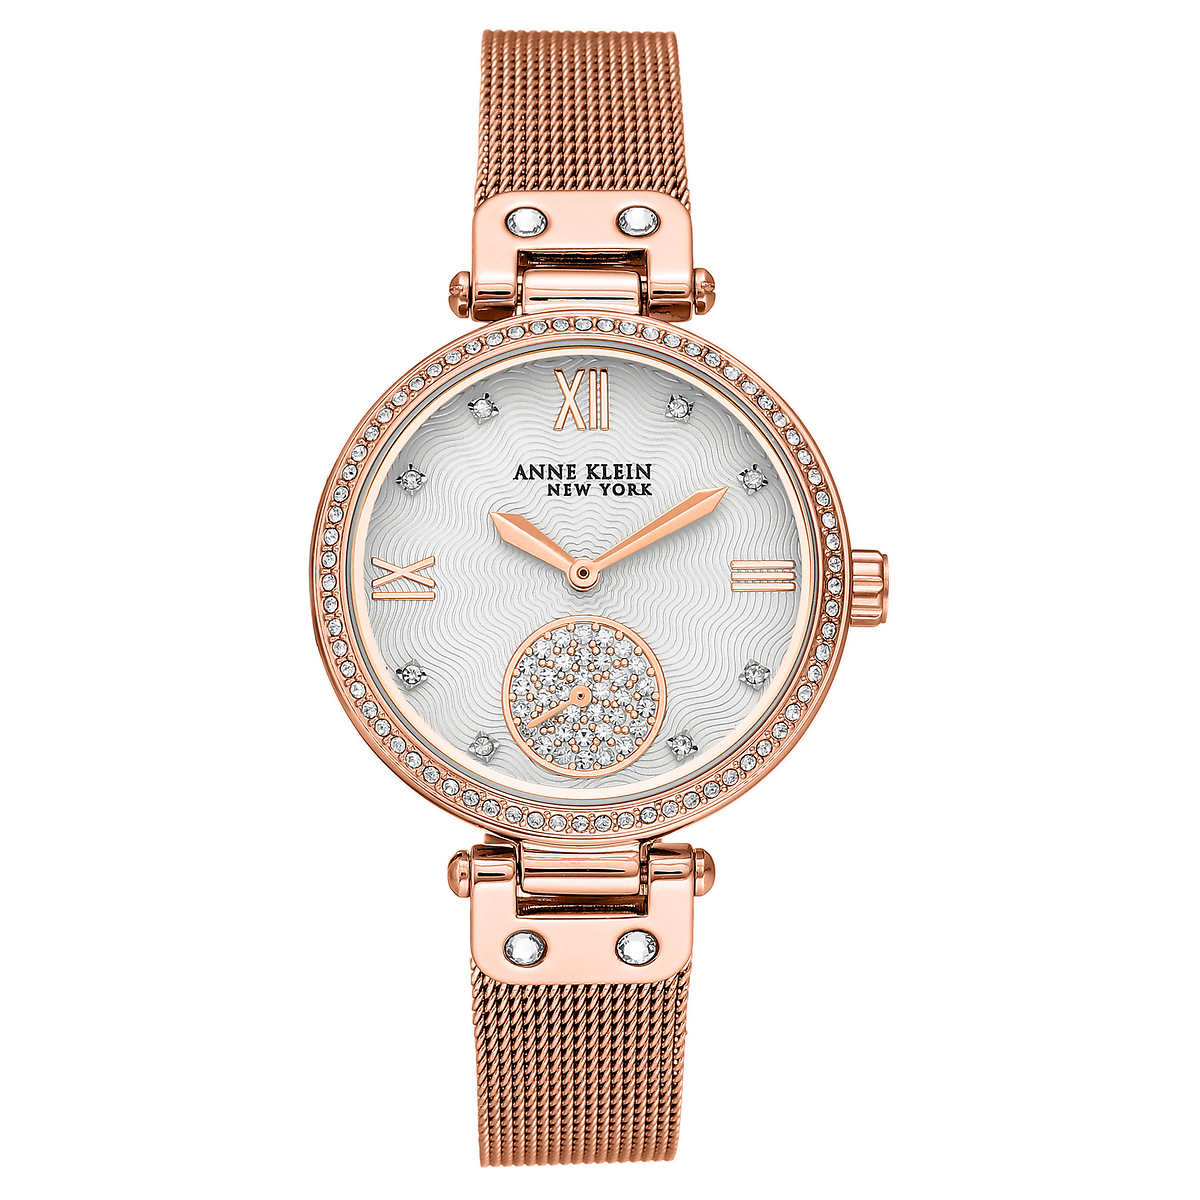 Anne Klein New York Rose Gold Tone Mesh Las Bracelet Watch With Swarovski Crystals